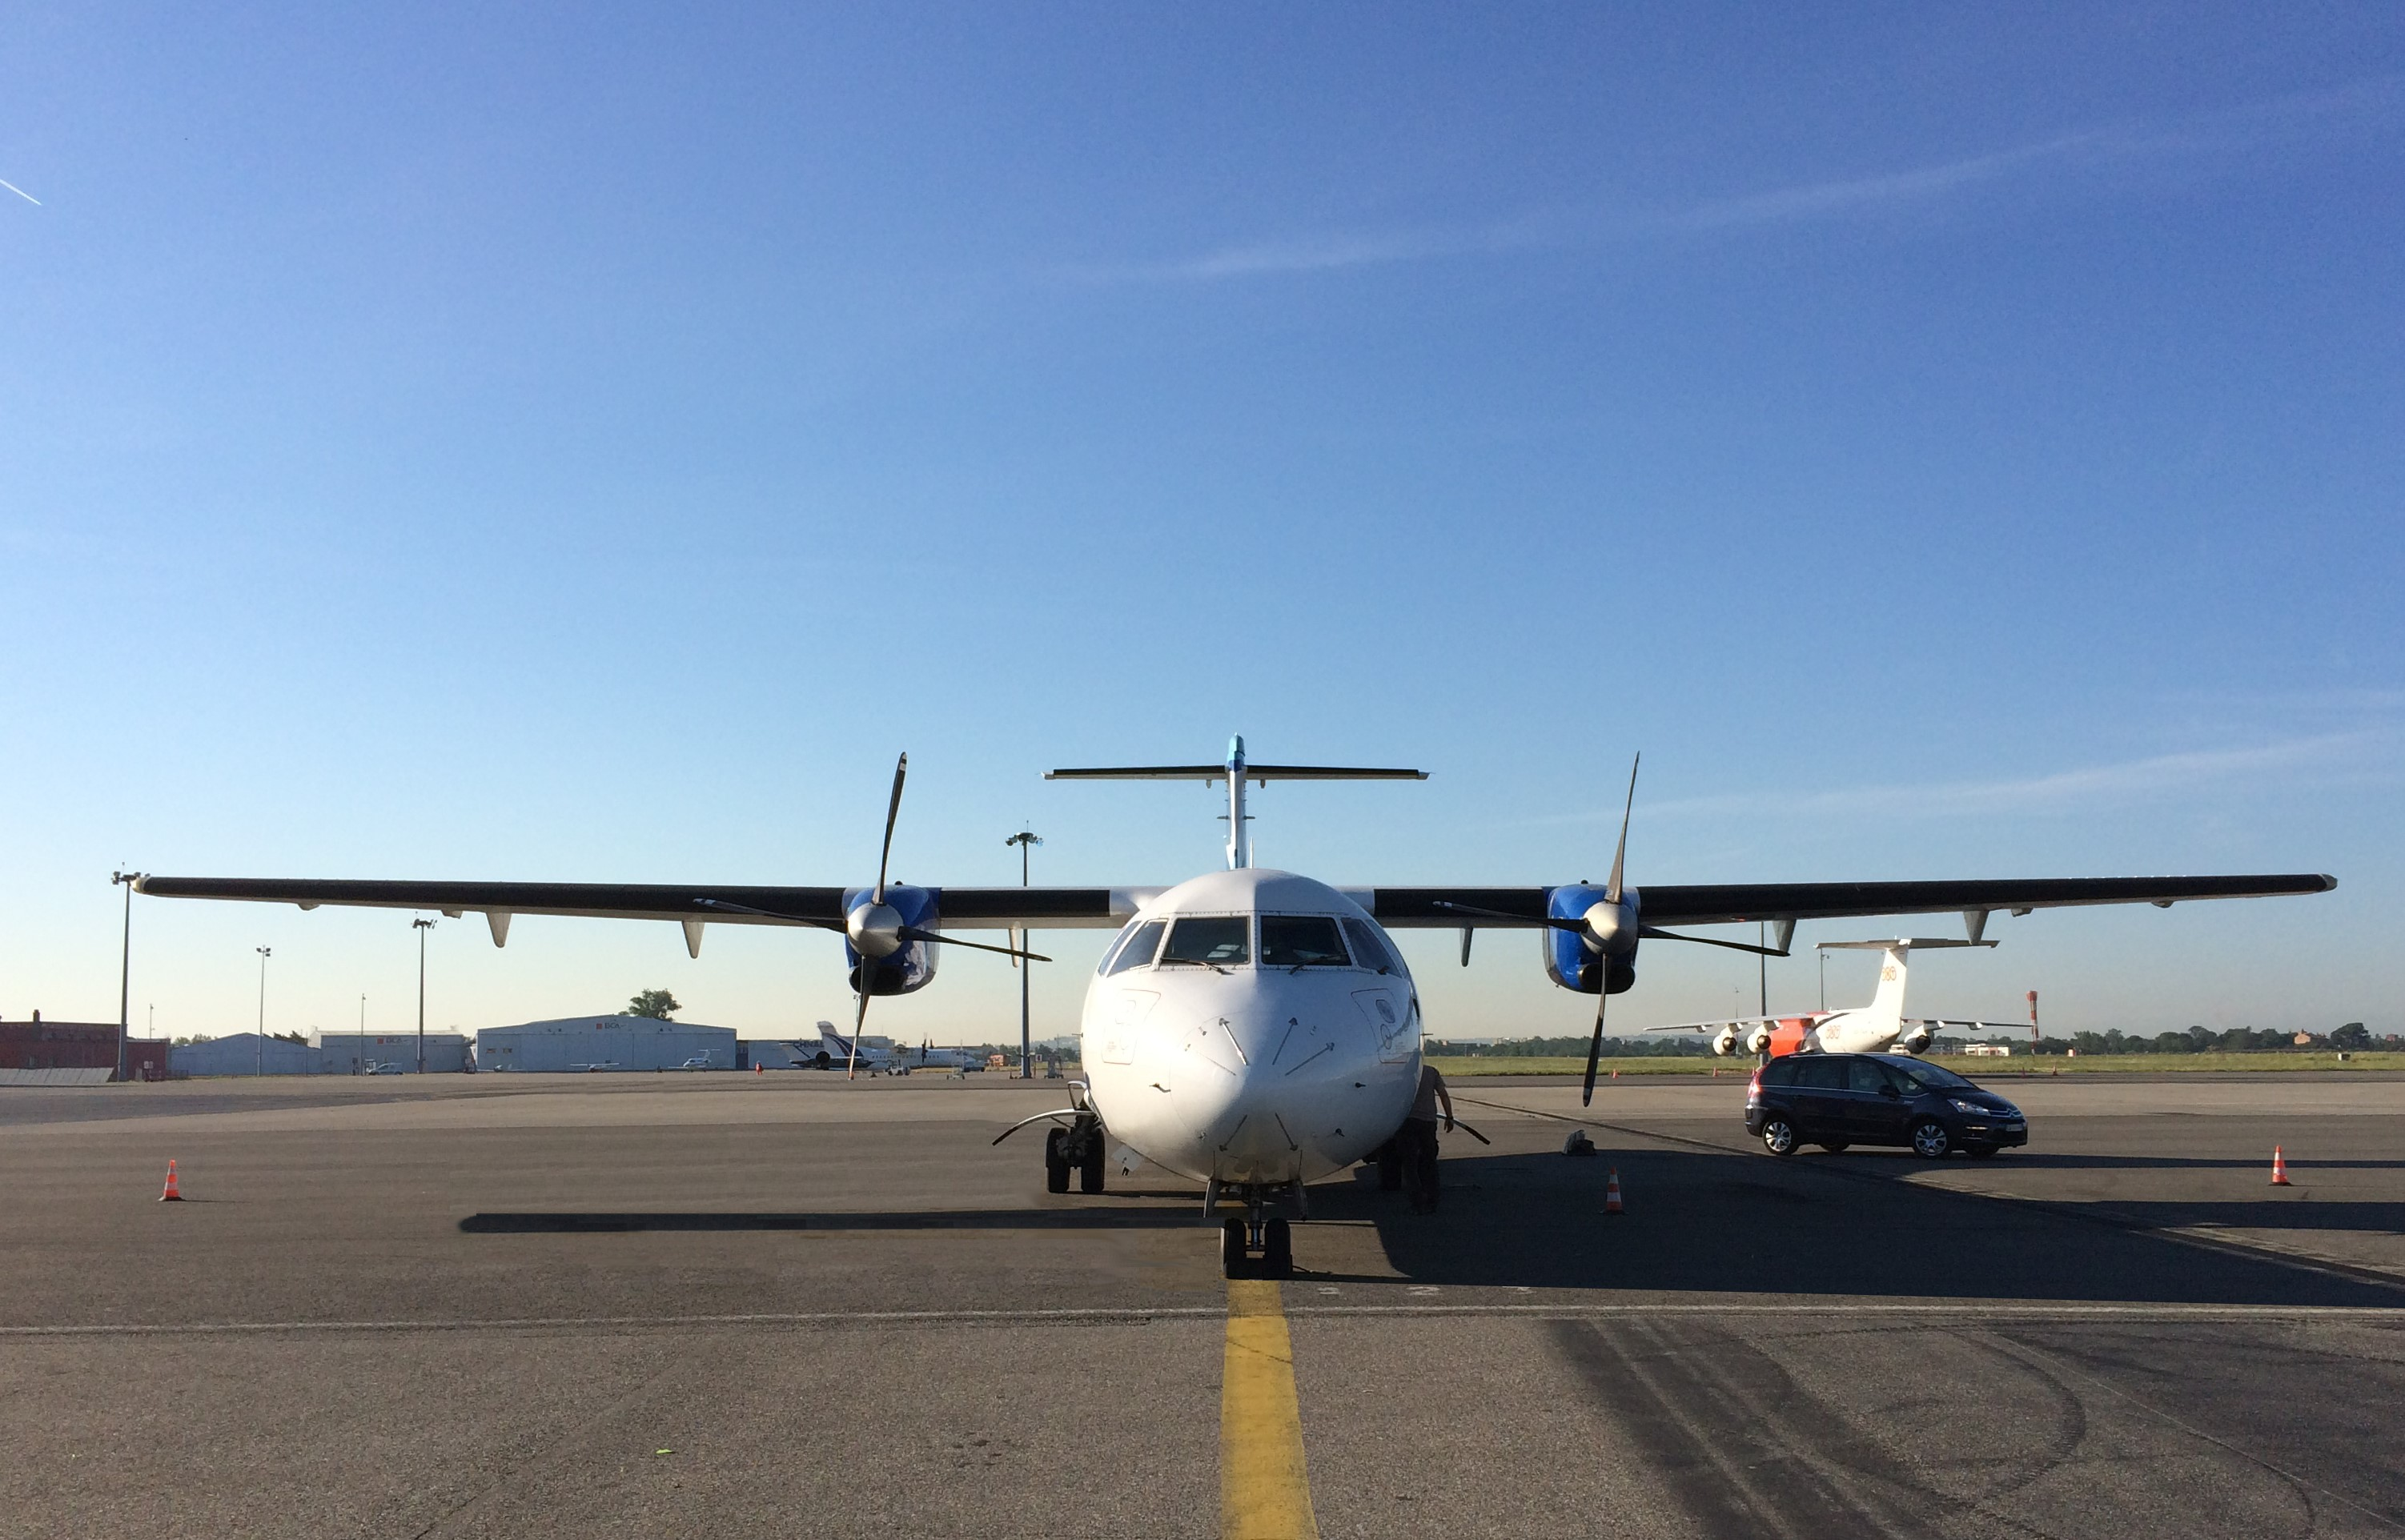 ATR 72-200, MSN 411 sold as the last remaining aircraft from the package of 11